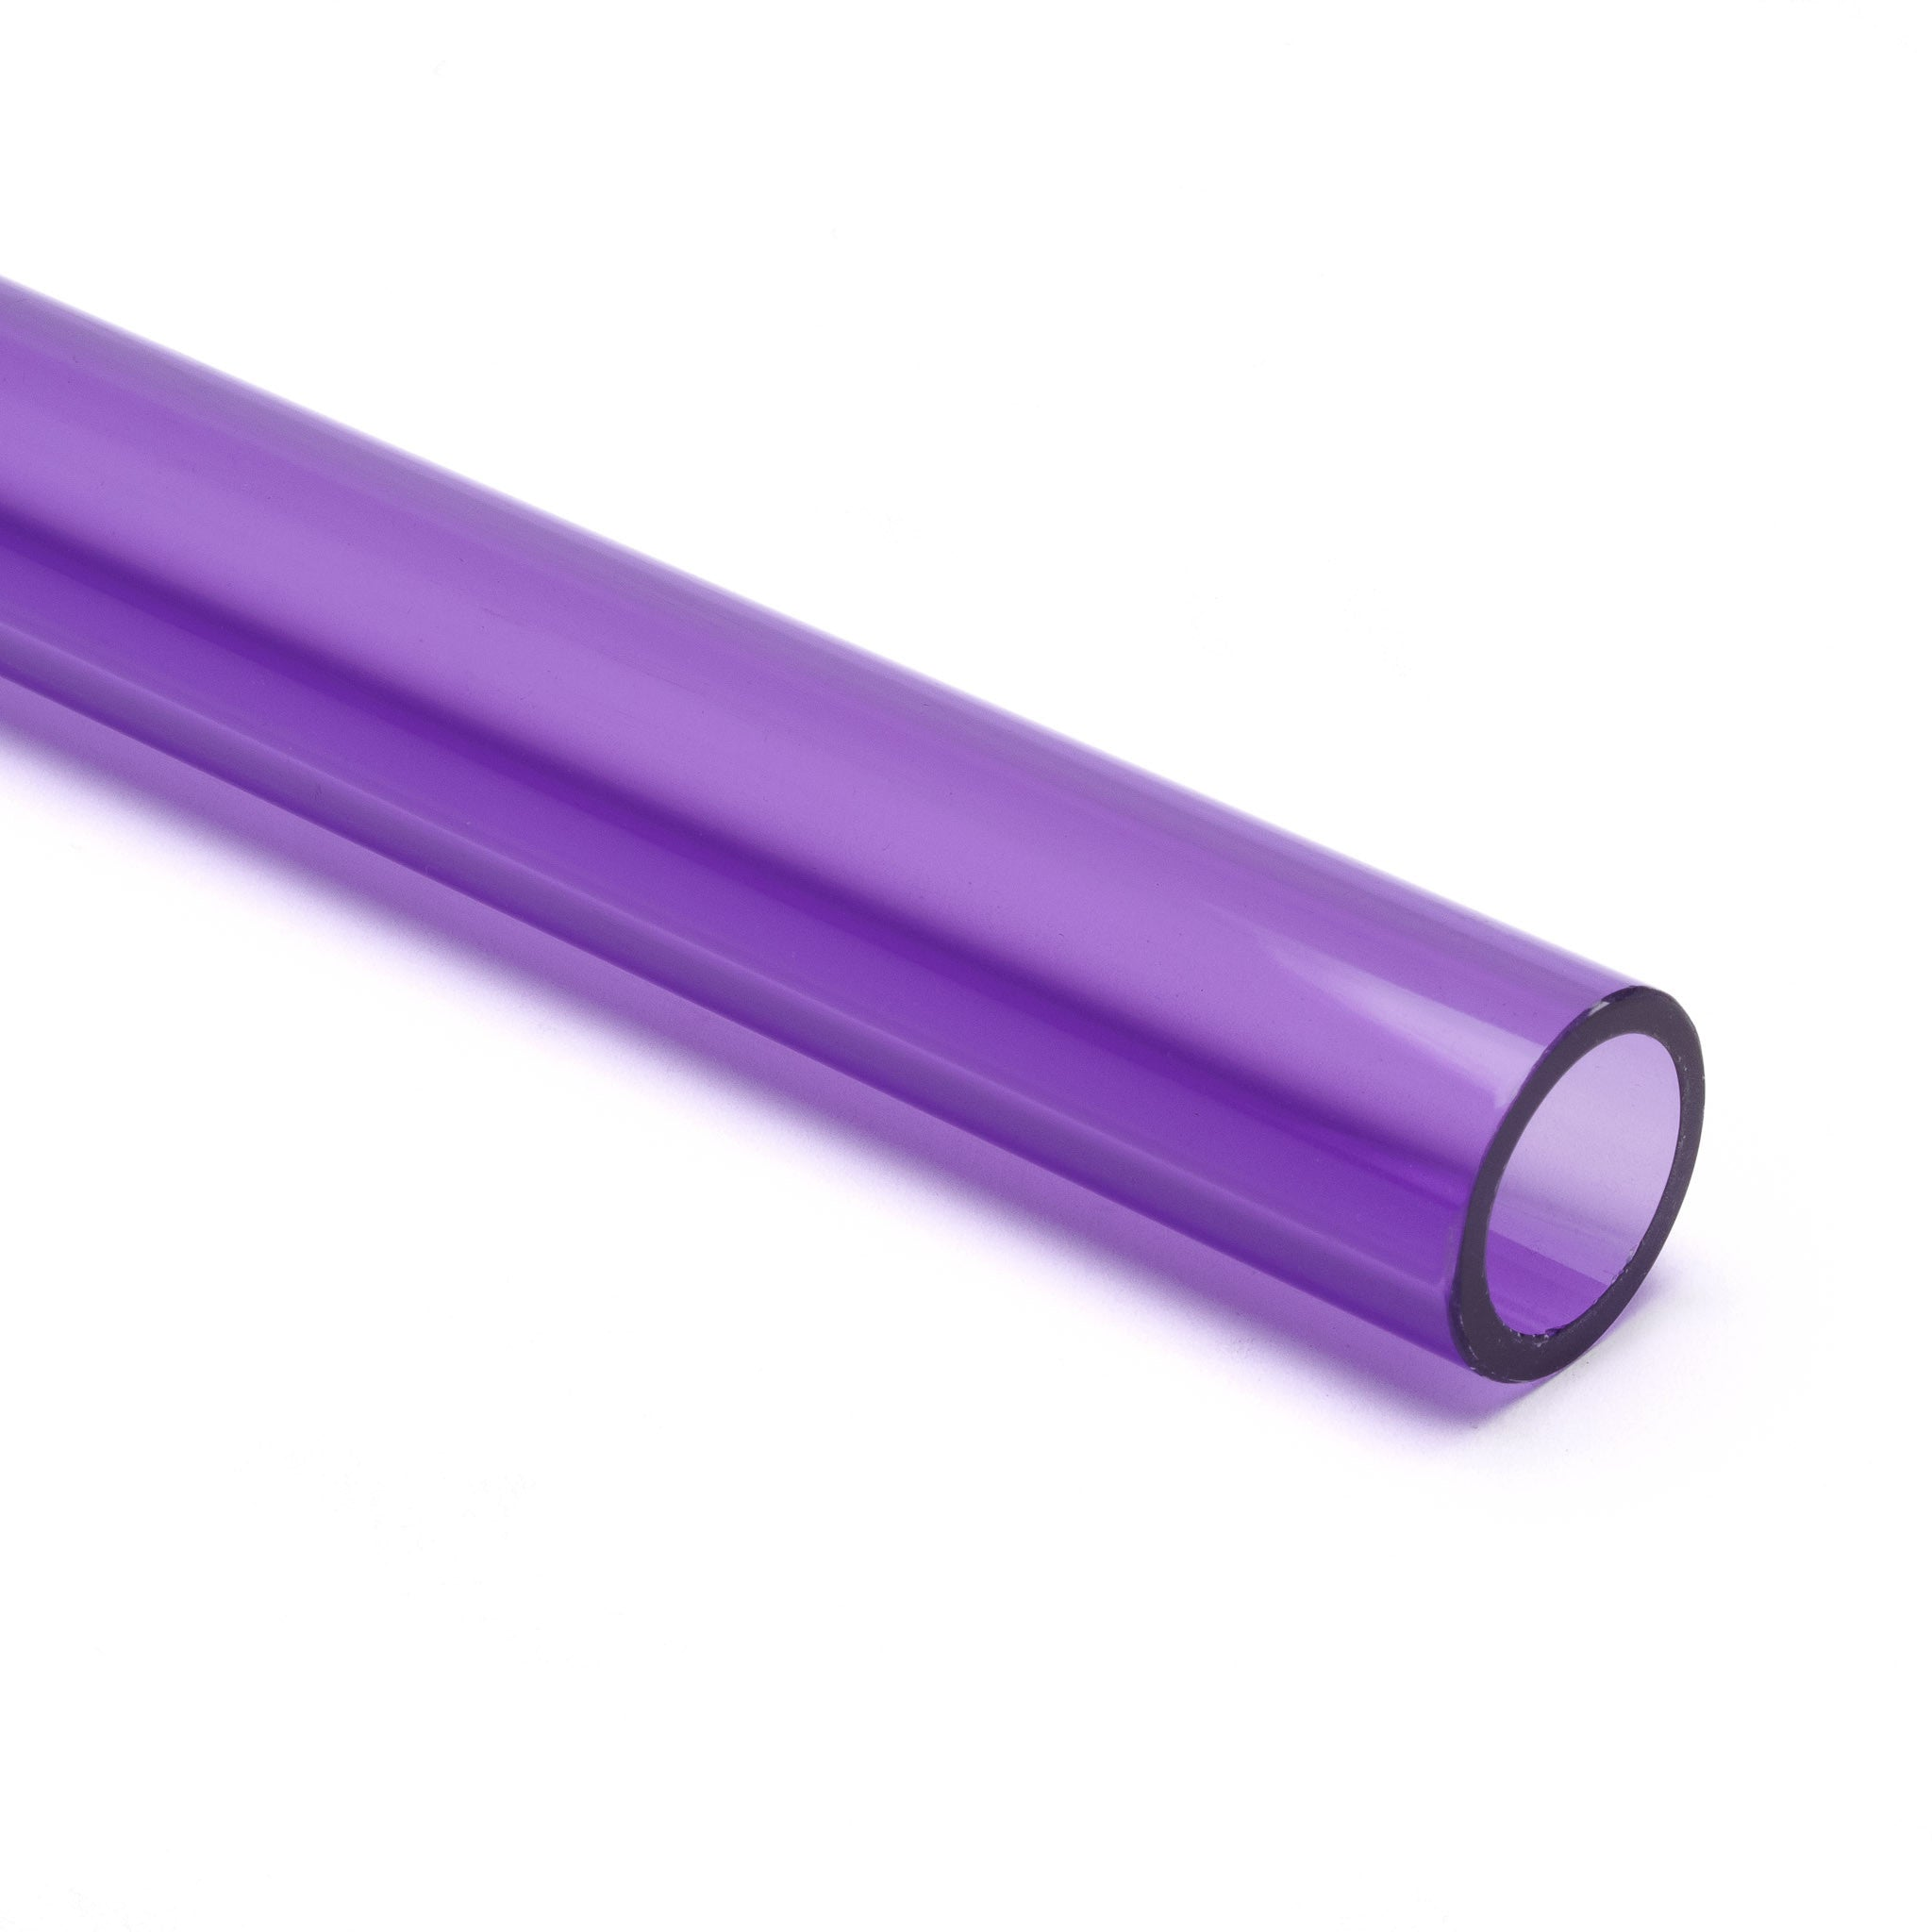 Purple Transparent Acrylic Round Tube